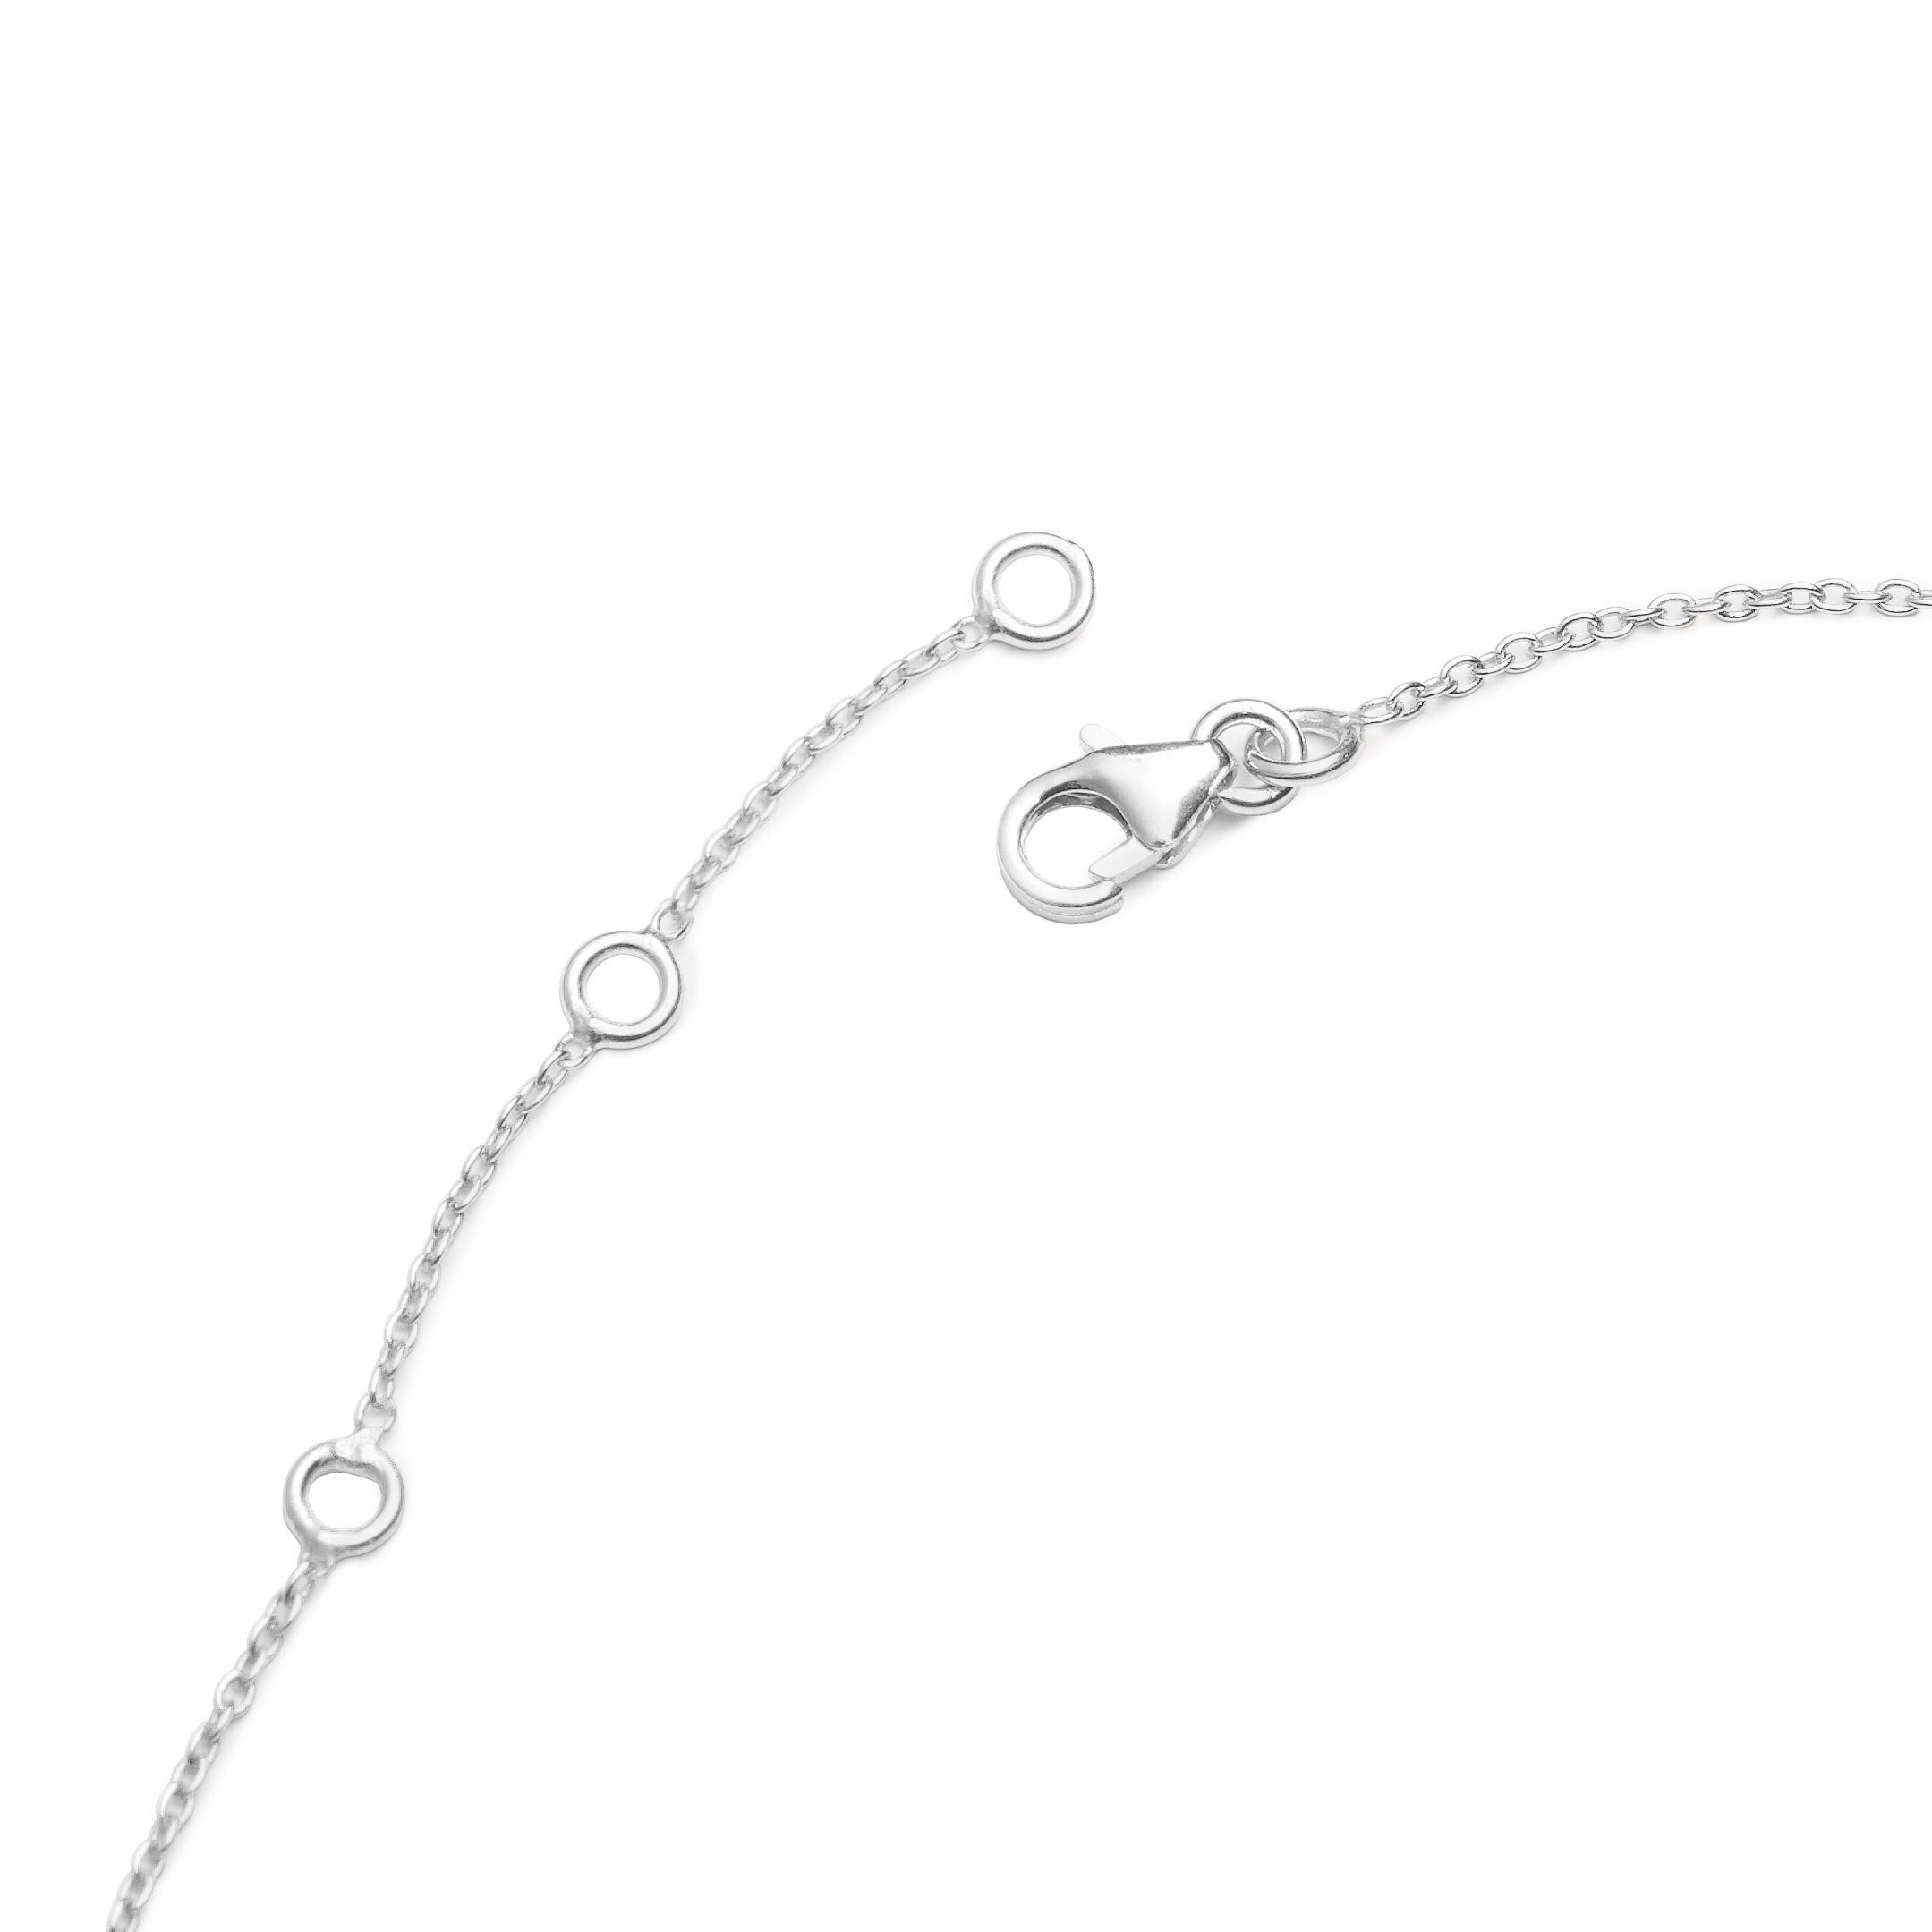 Hepburn Necklace in Silver with Sapphire